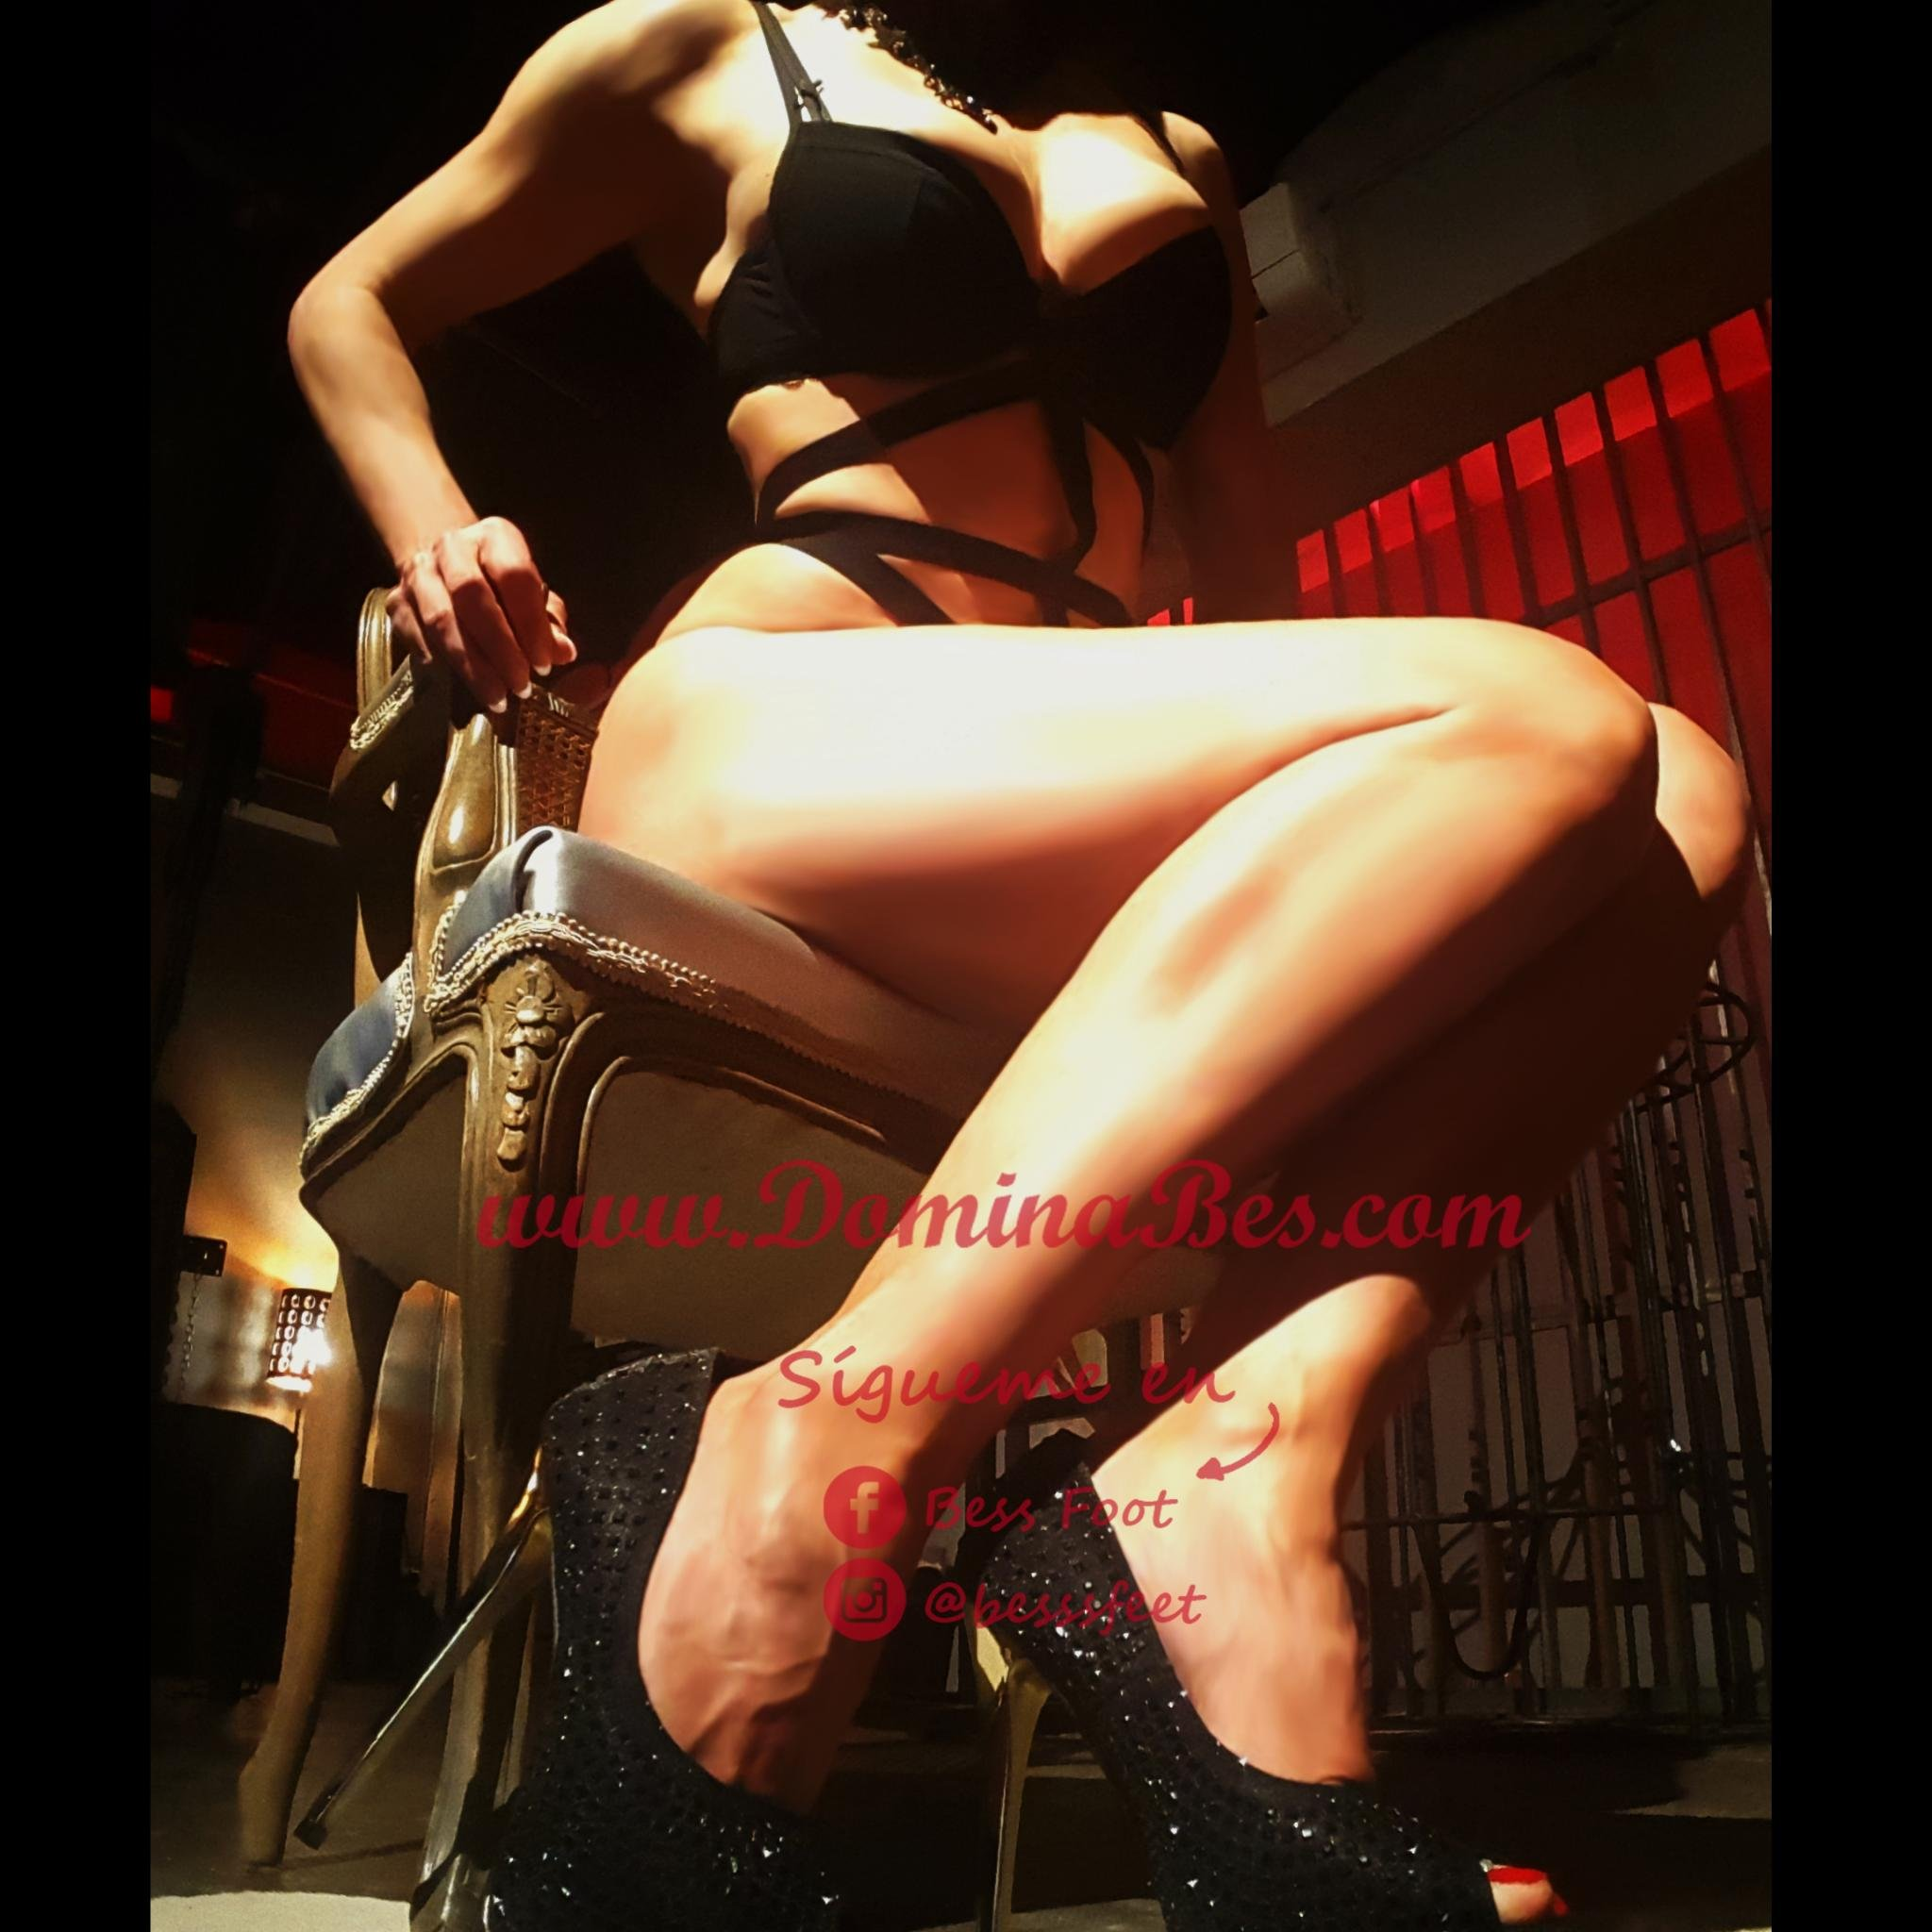 Ama freda bdsm, spanish escort in barcelona